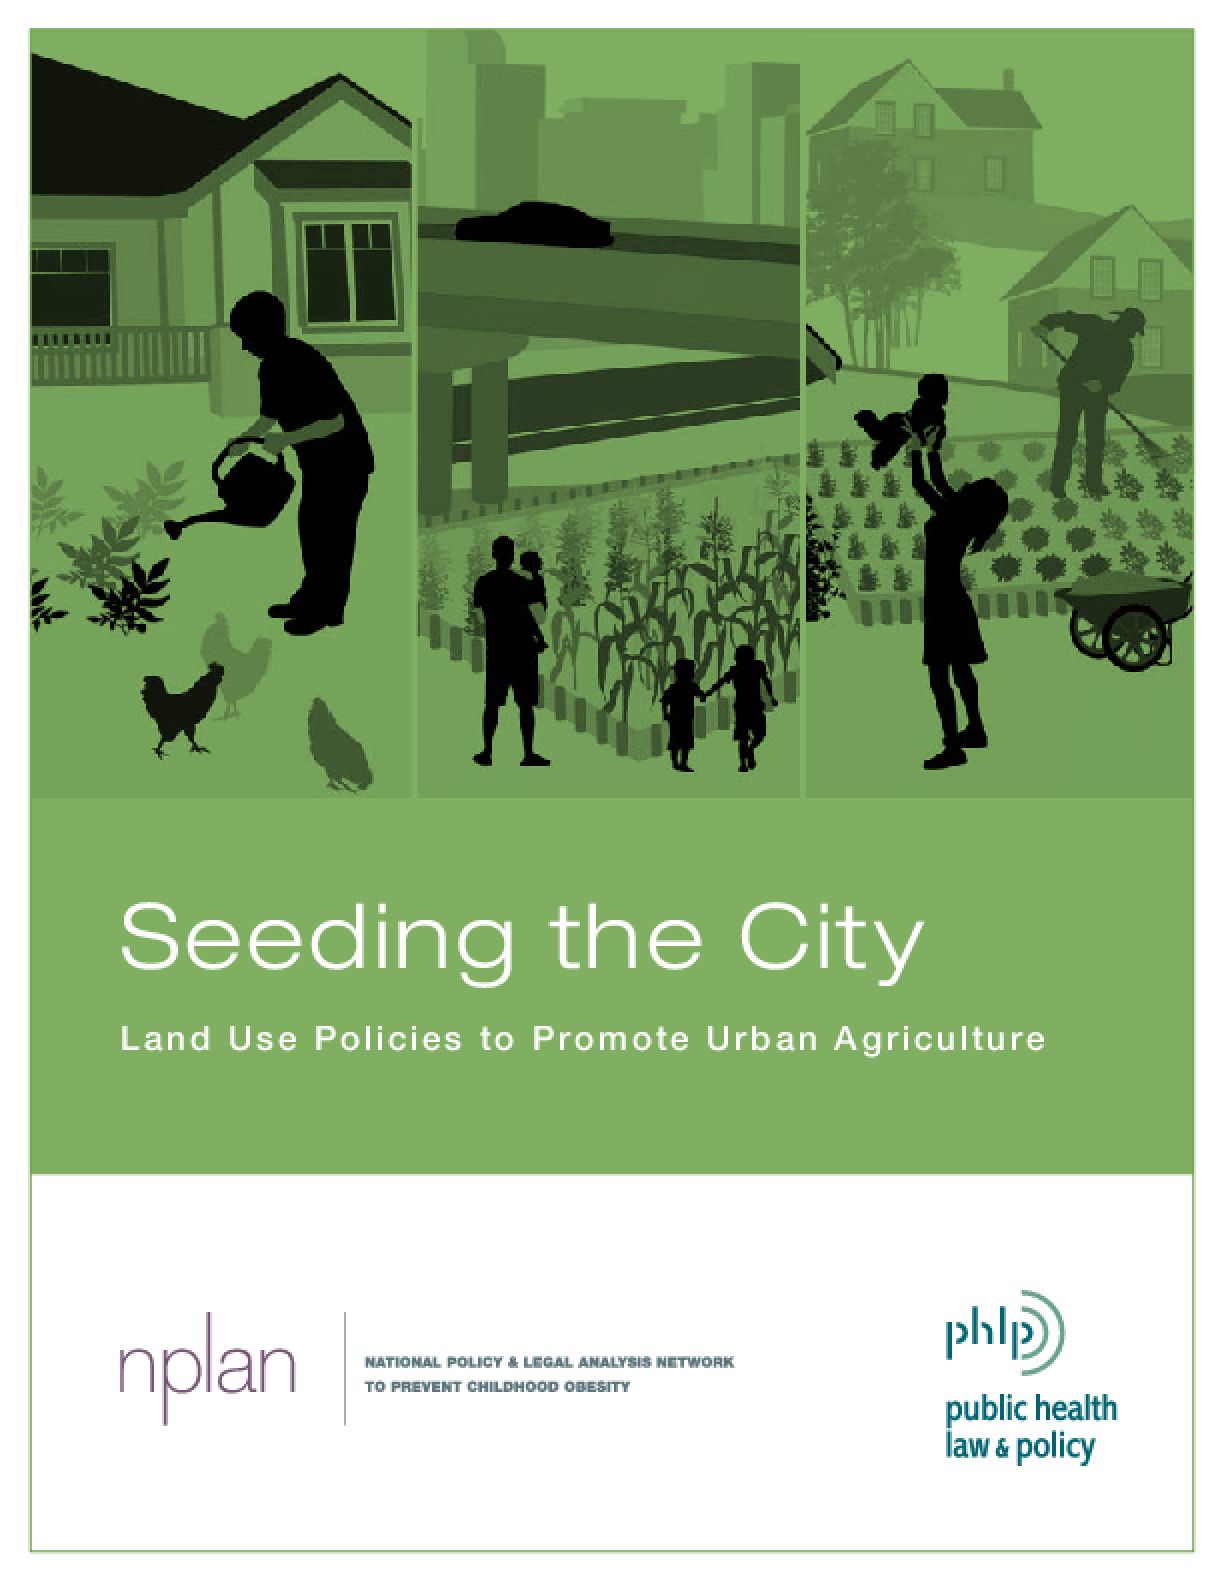 Seeding the City: Land Use Policies to Promote Urban Agriculture